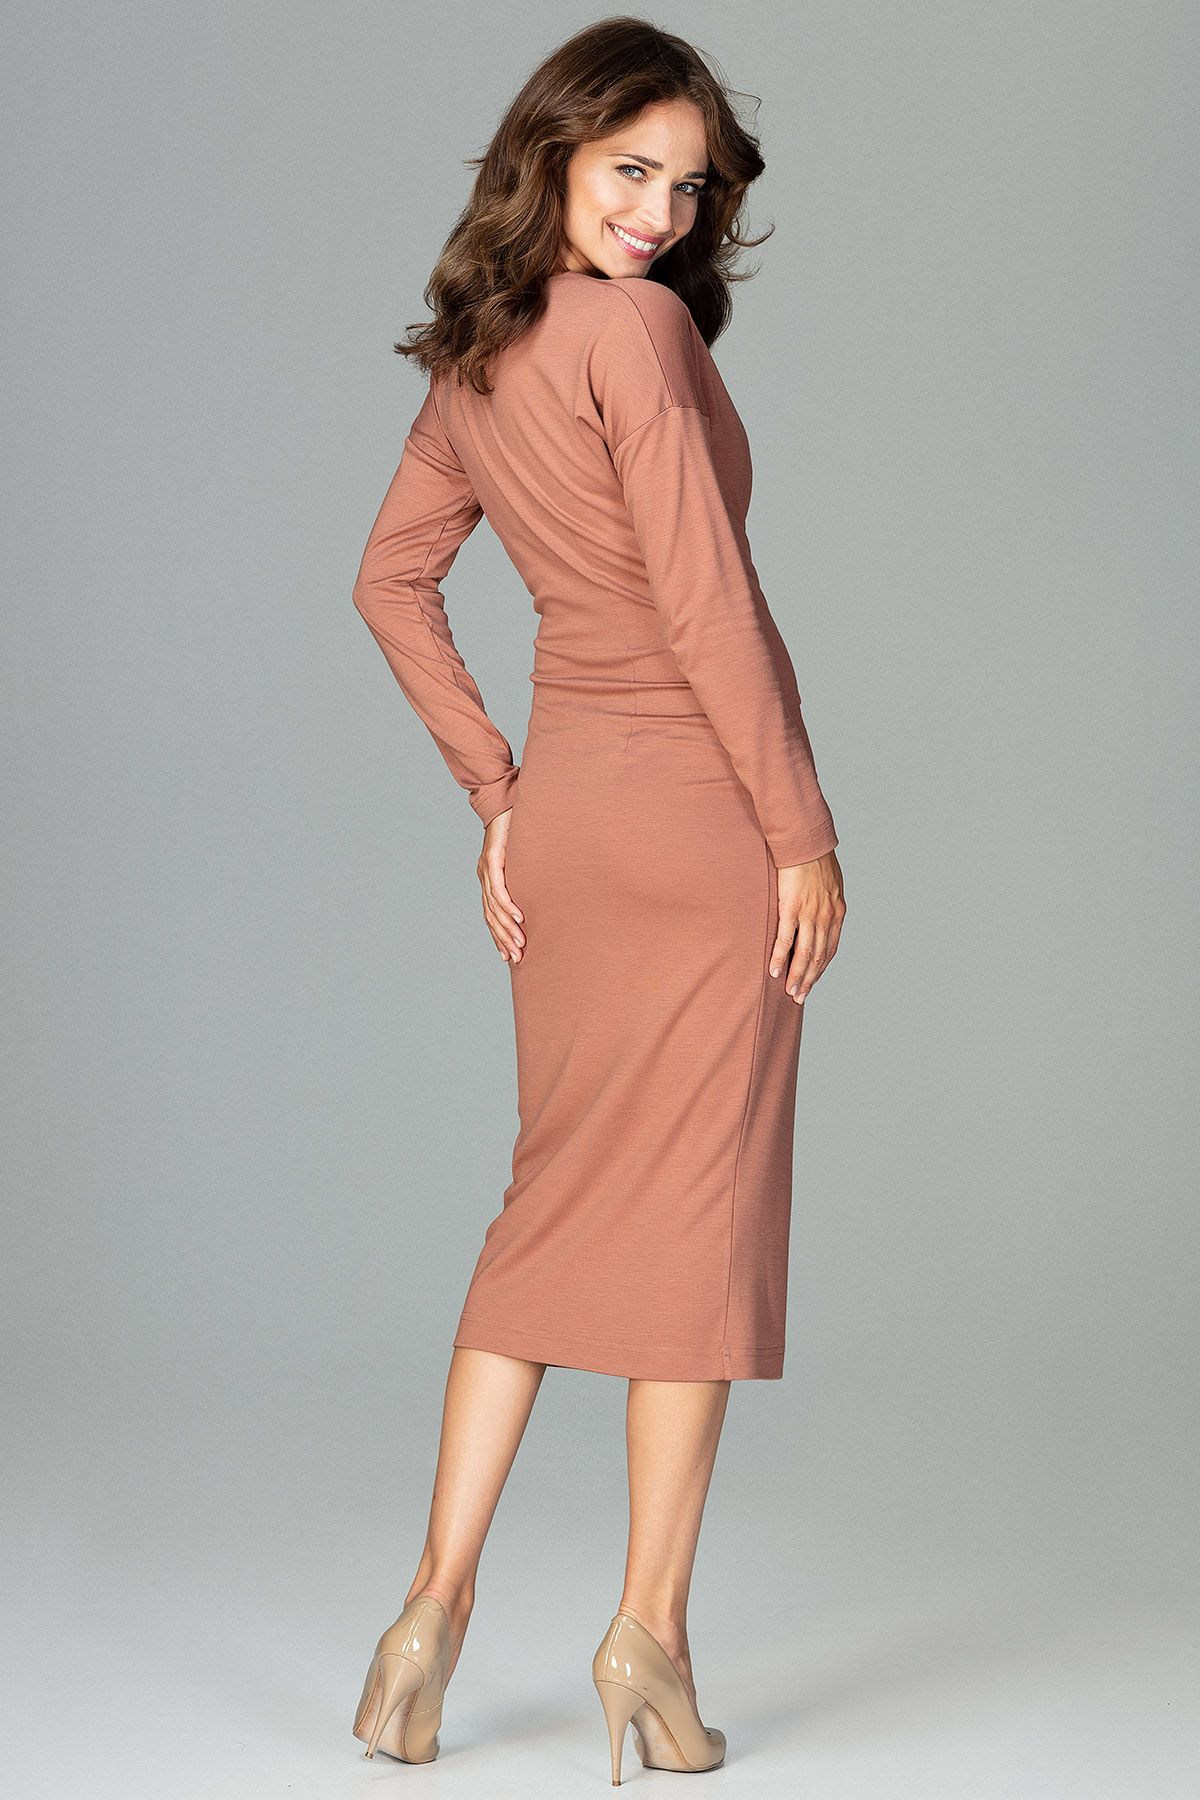 Brown Wrap Dress With Long Sleeves